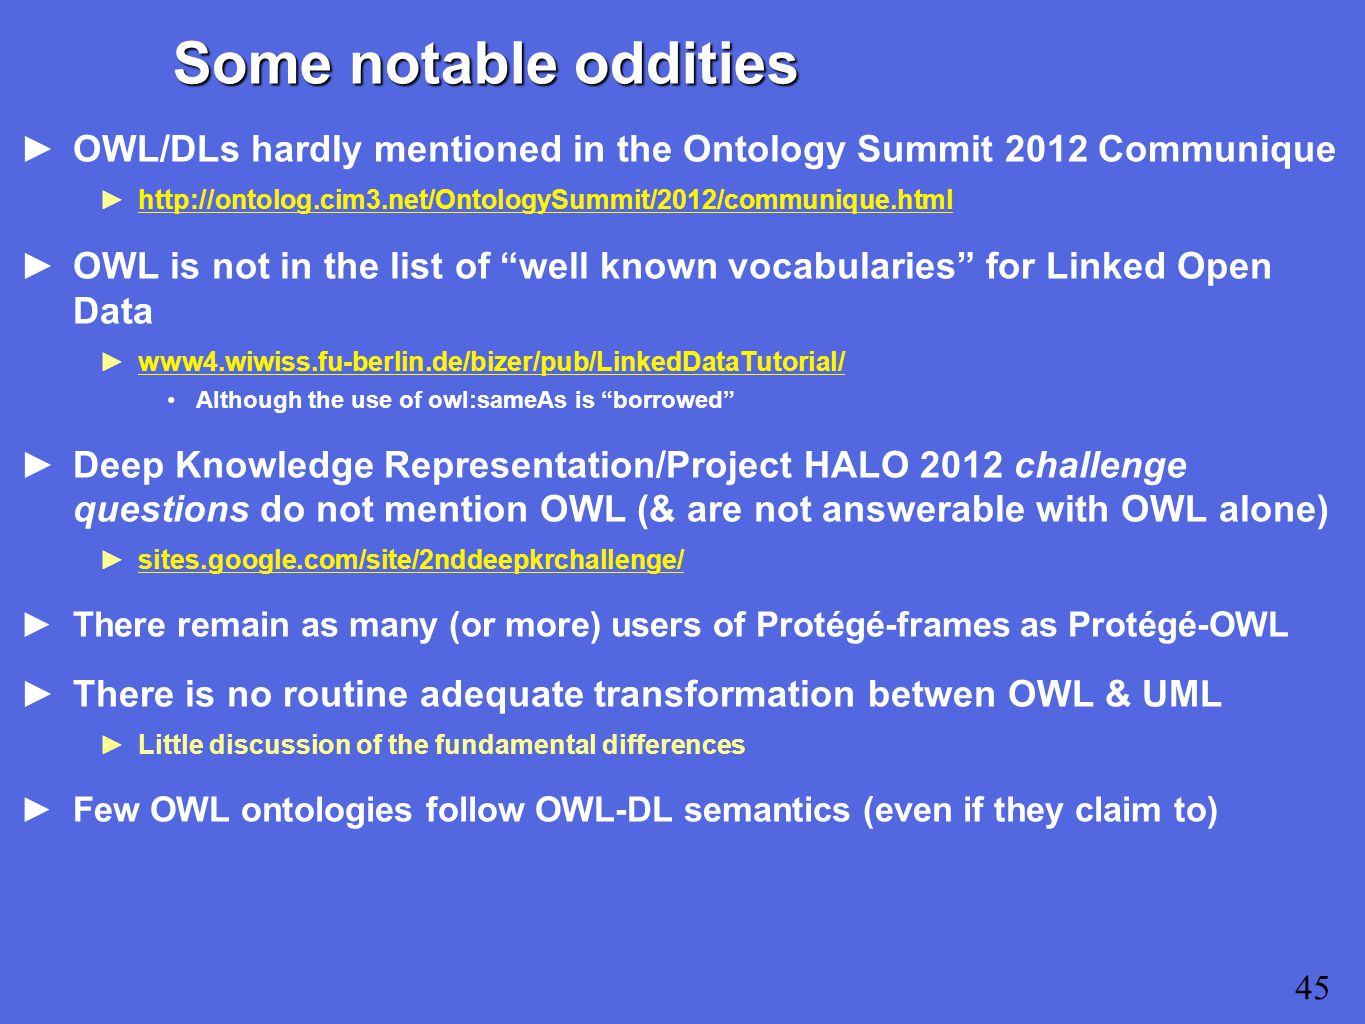 Some notable oddities ►OWL/DLs hardly mentioned in the Ontology Summit 2012 Communique ►  ►OWL is not in the list of well known vocabularies for Linked Open Data ►www4.wiwiss.fu-berlin.de/bizer/pub/LinkedDataTutorial/www4.wiwiss.fu-berlin.de/bizer/pub/LinkedDataTutorial/ Although the use of owl:sameAs is borrowed ►Deep Knowledge Representation/Project HALO 2012 challenge questions do not mention OWL (& are not answerable with OWL alone) ►sites.google.com/site/2nddeepkrchallenge/sites.google.com/site/2nddeepkrchallenge/ ►There remain as many (or more) users of Protégé-frames as Protégé-OWL ►There is no routine adequate transformation betwen OWL & UML ►Little discussion of the fundamental differences ►Few OWL ontologies follow OWL-DL semantics (even if they claim to) 45